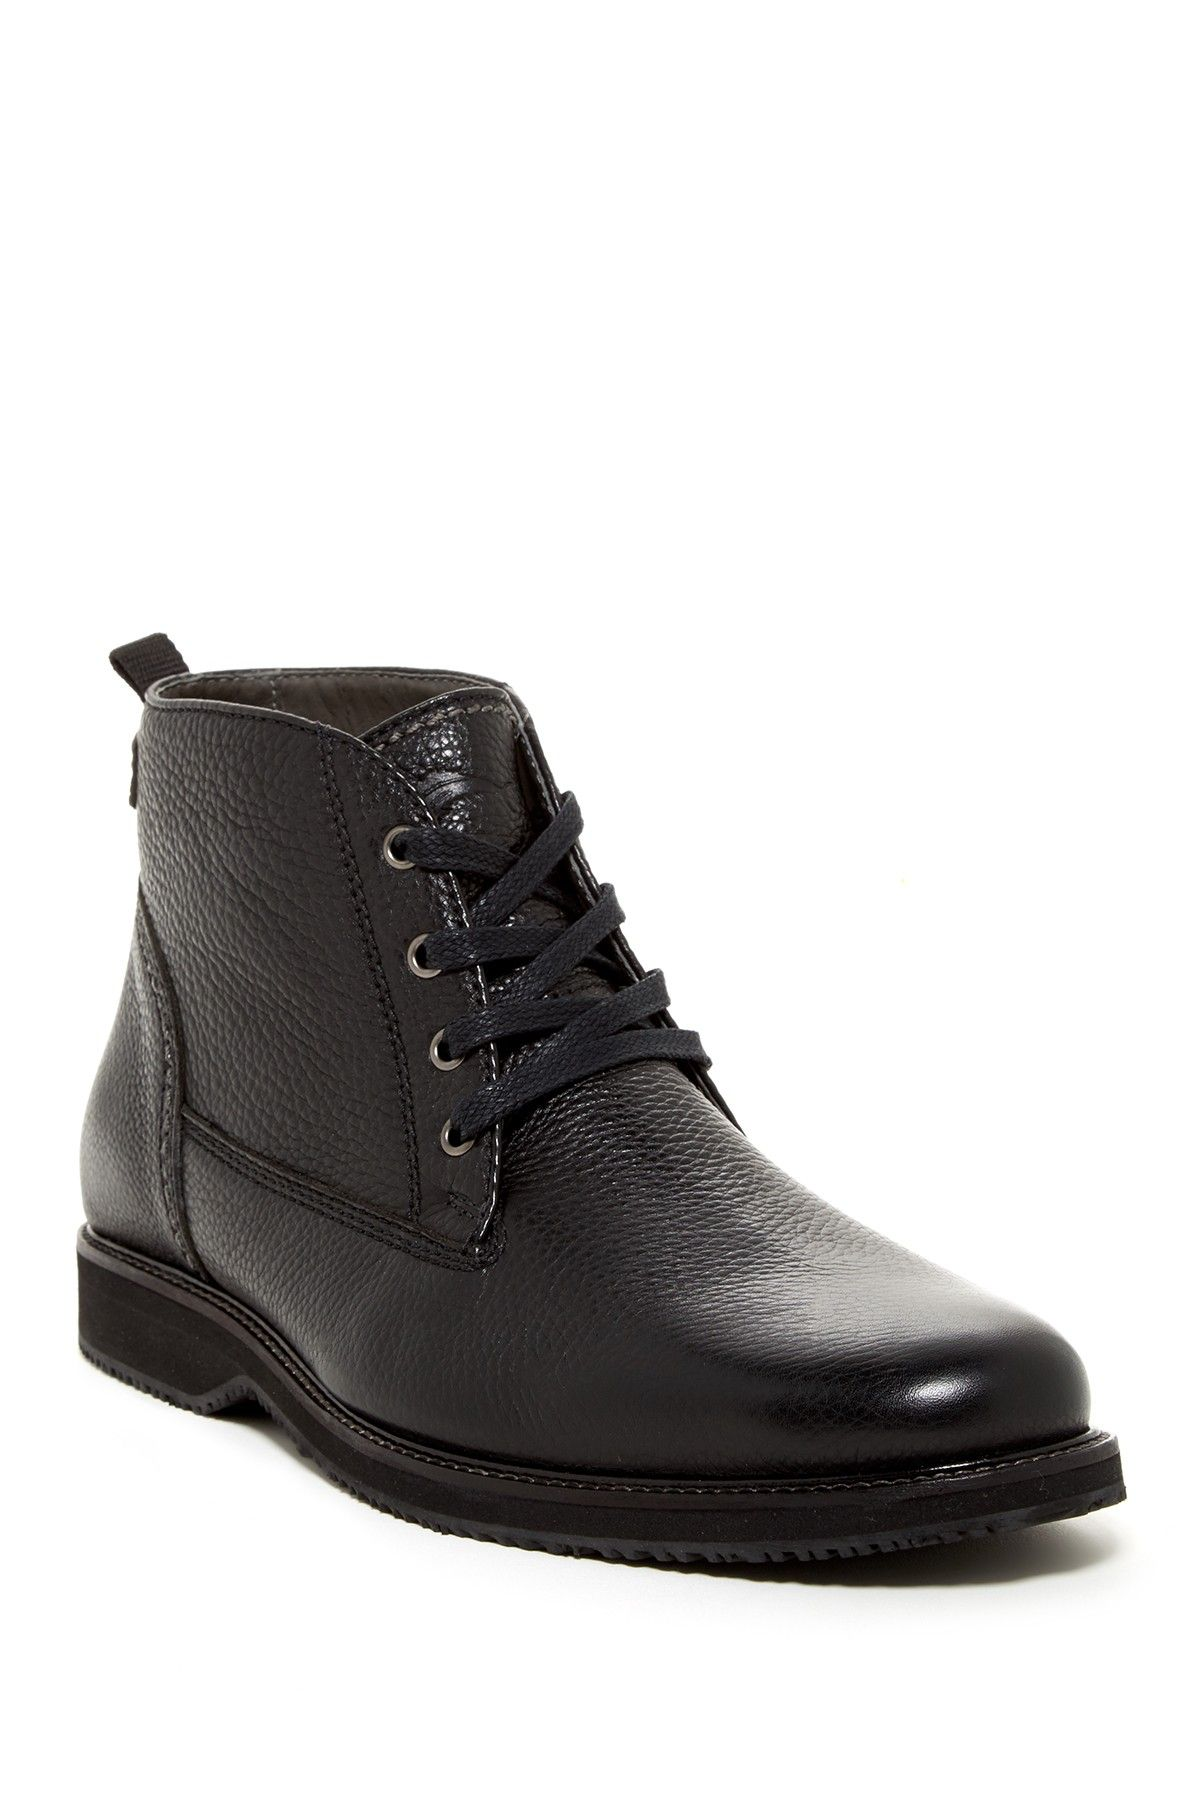 Tommy bahama · Black leather chukka boot for men.